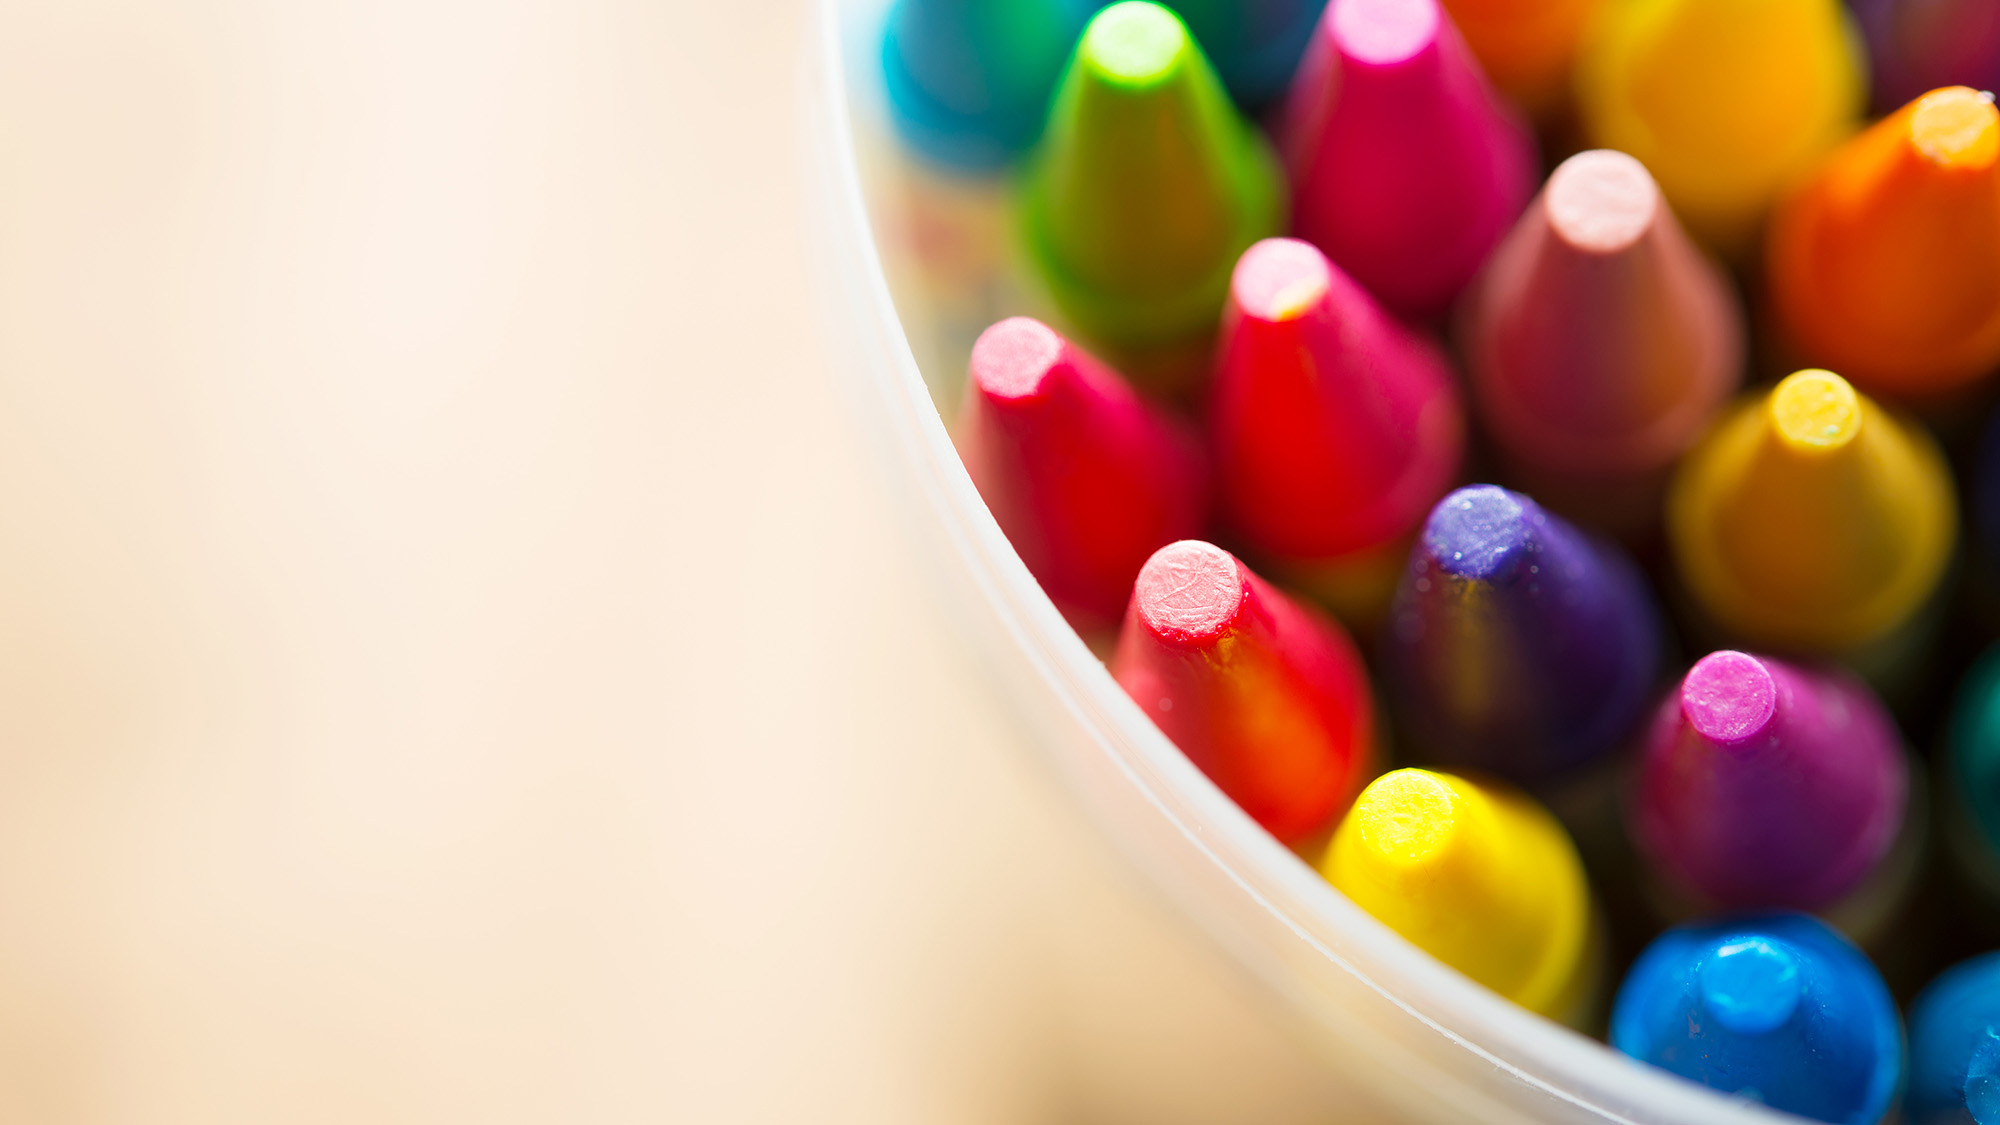 Premium Wi-Fi: New opportunities for service provider growth